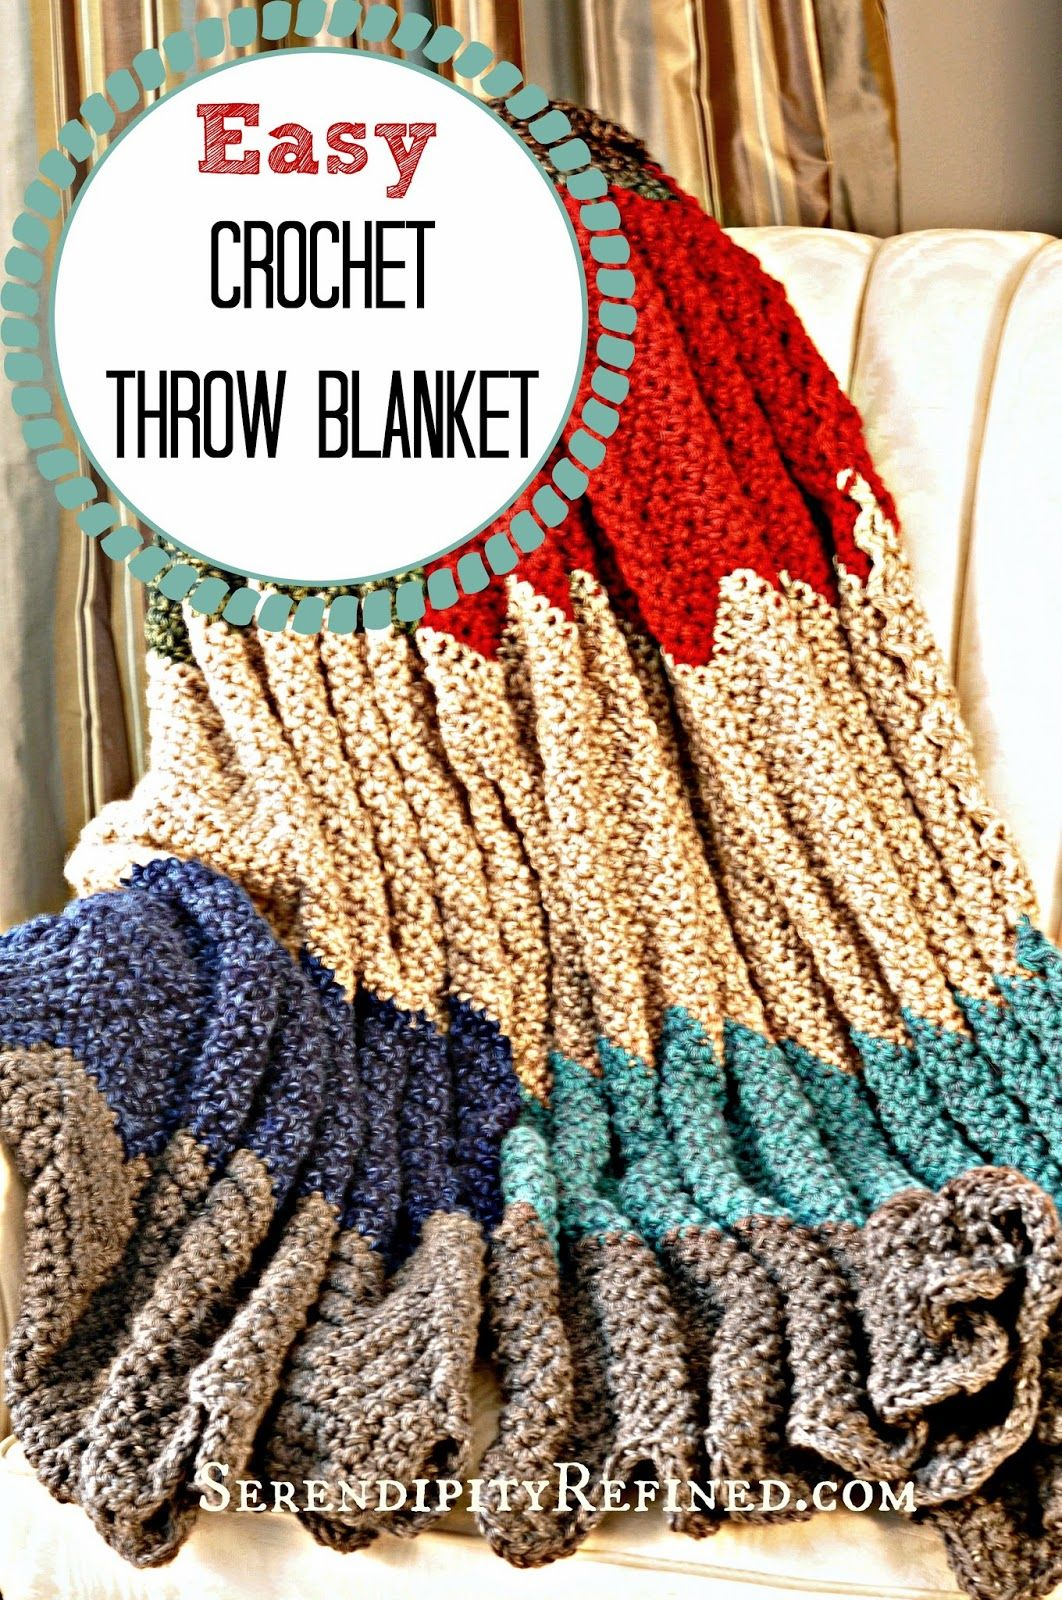 Simple Crochet Throw Blanket Pattern Serendipity Refined Diy Home